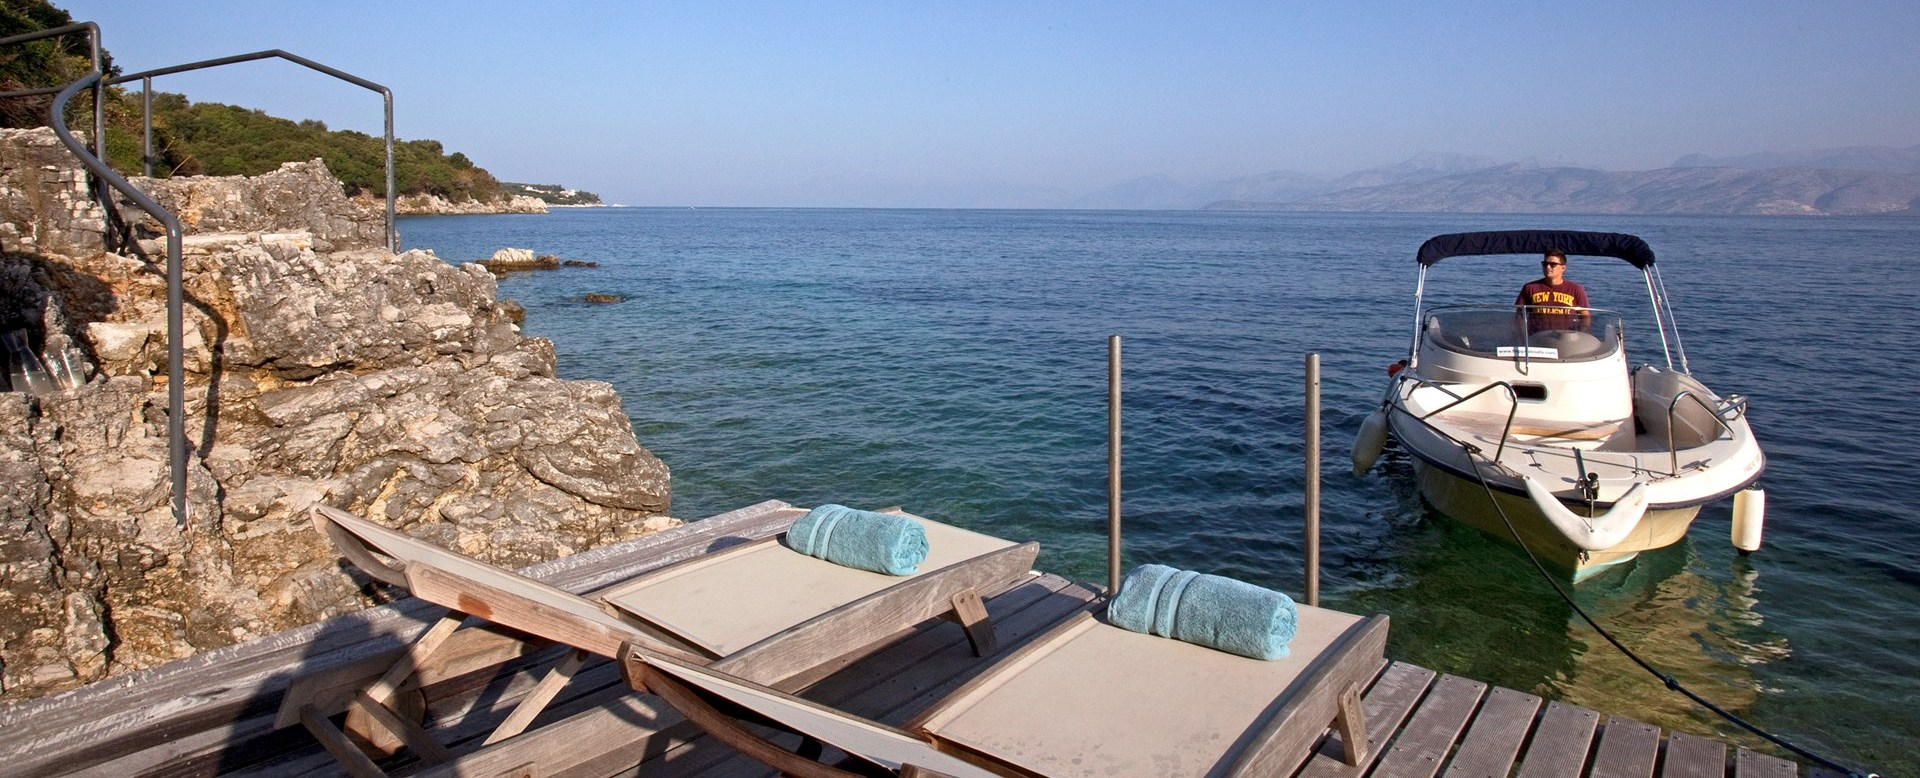 villa-amarea-private-boat-jetty